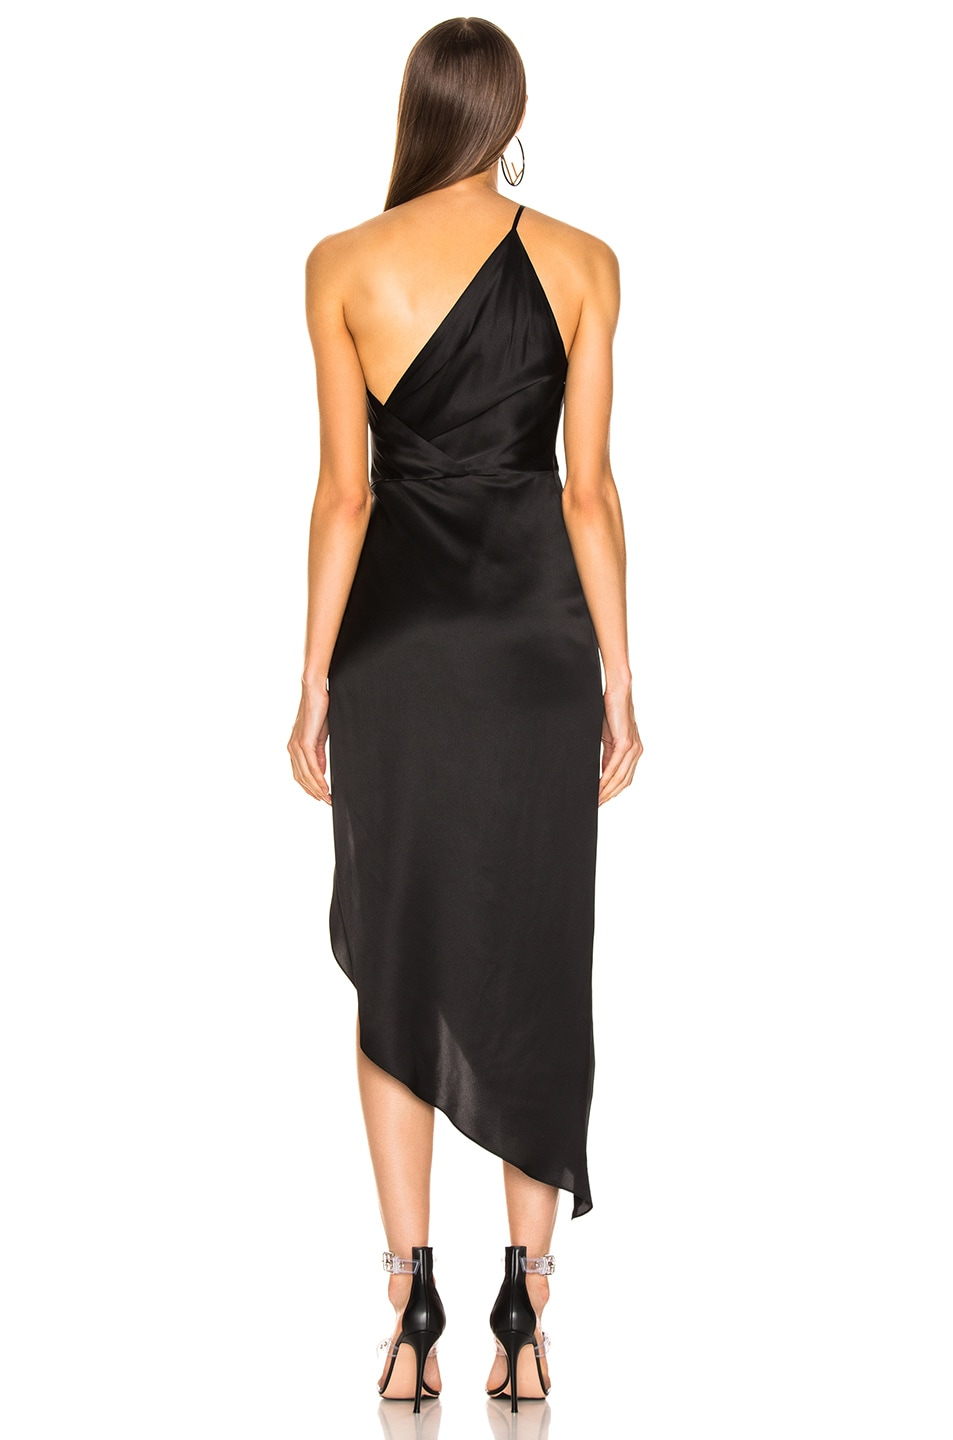 Image 4 of Michelle Mason for FWRD Twist Knot Midi Dress in Black